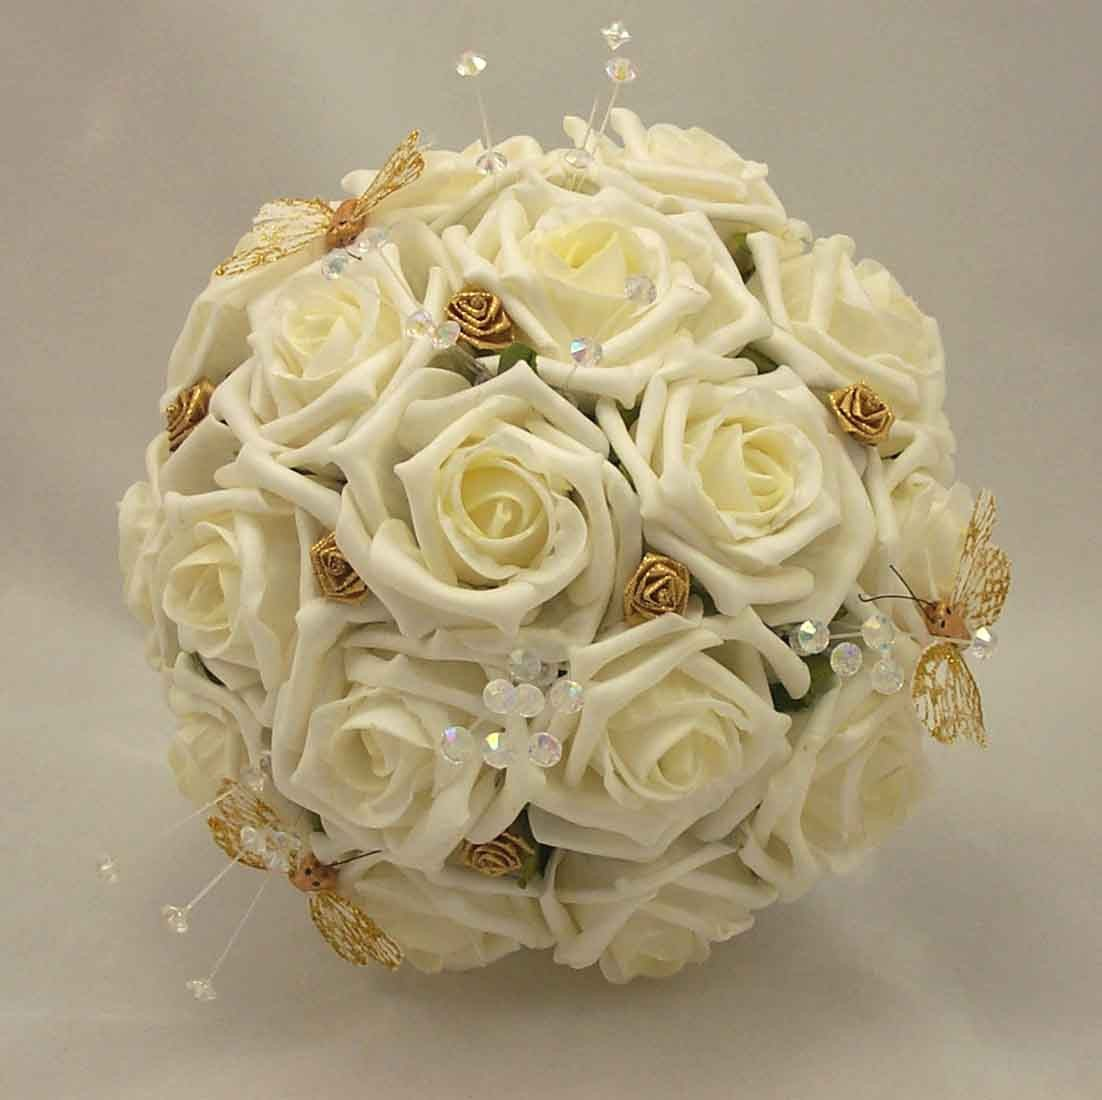 Gold Wedding Flowers: Ivory Rose & Gold Butterfly